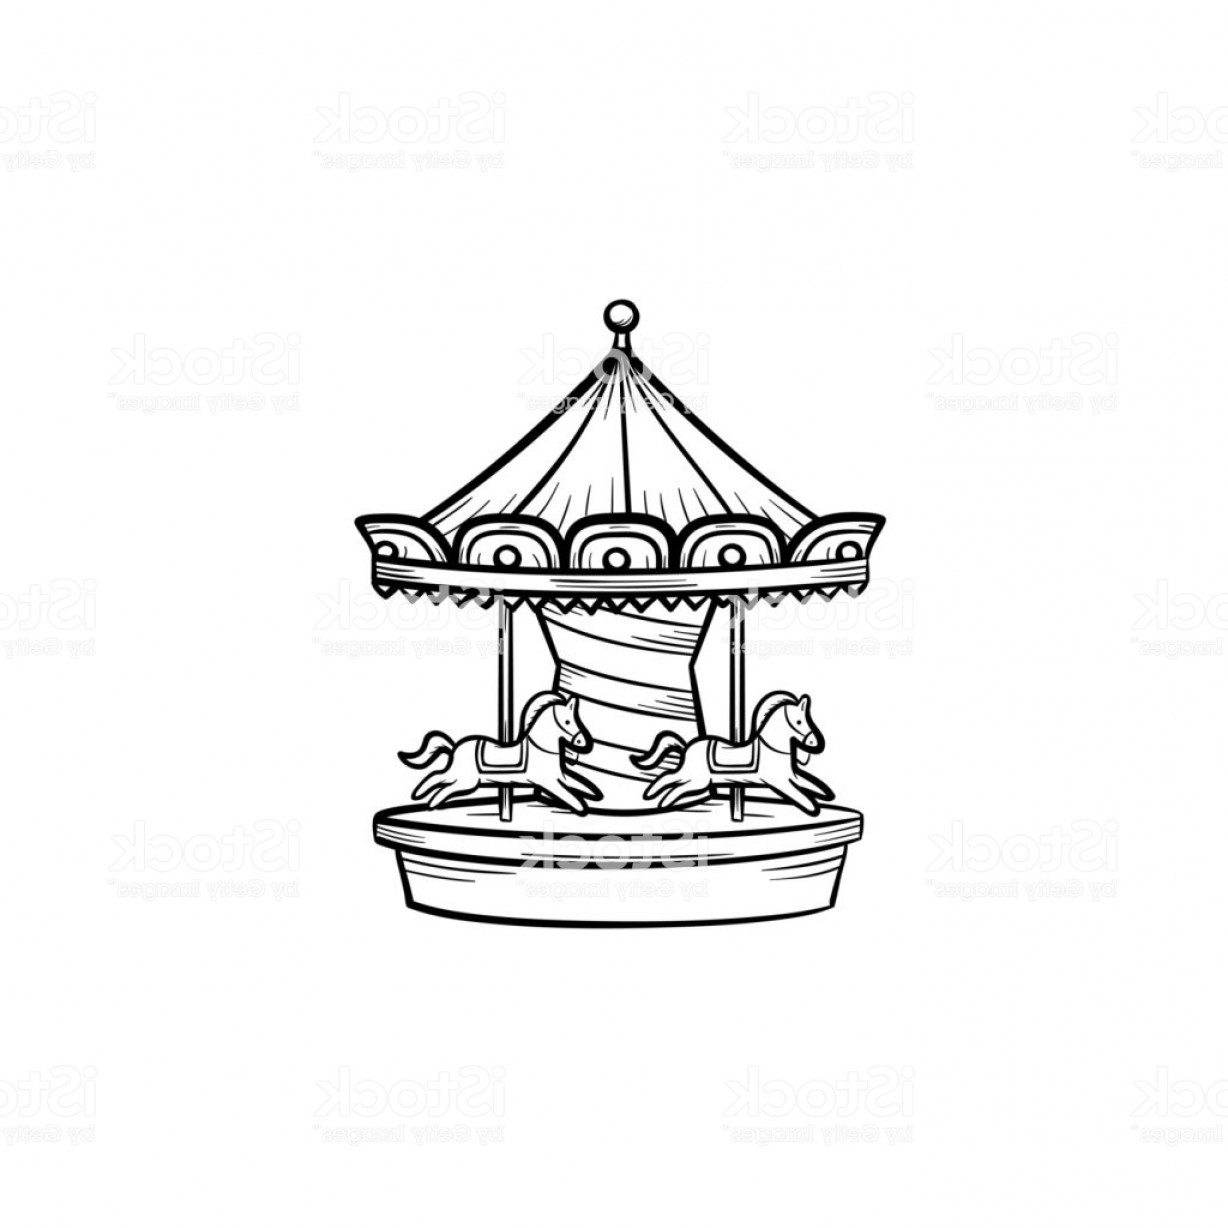 Vintage merry go round clipart svg royalty free stock Merry Go Round Carousel Hand Drawn Outline Doodle Icon Gm ... svg royalty free stock